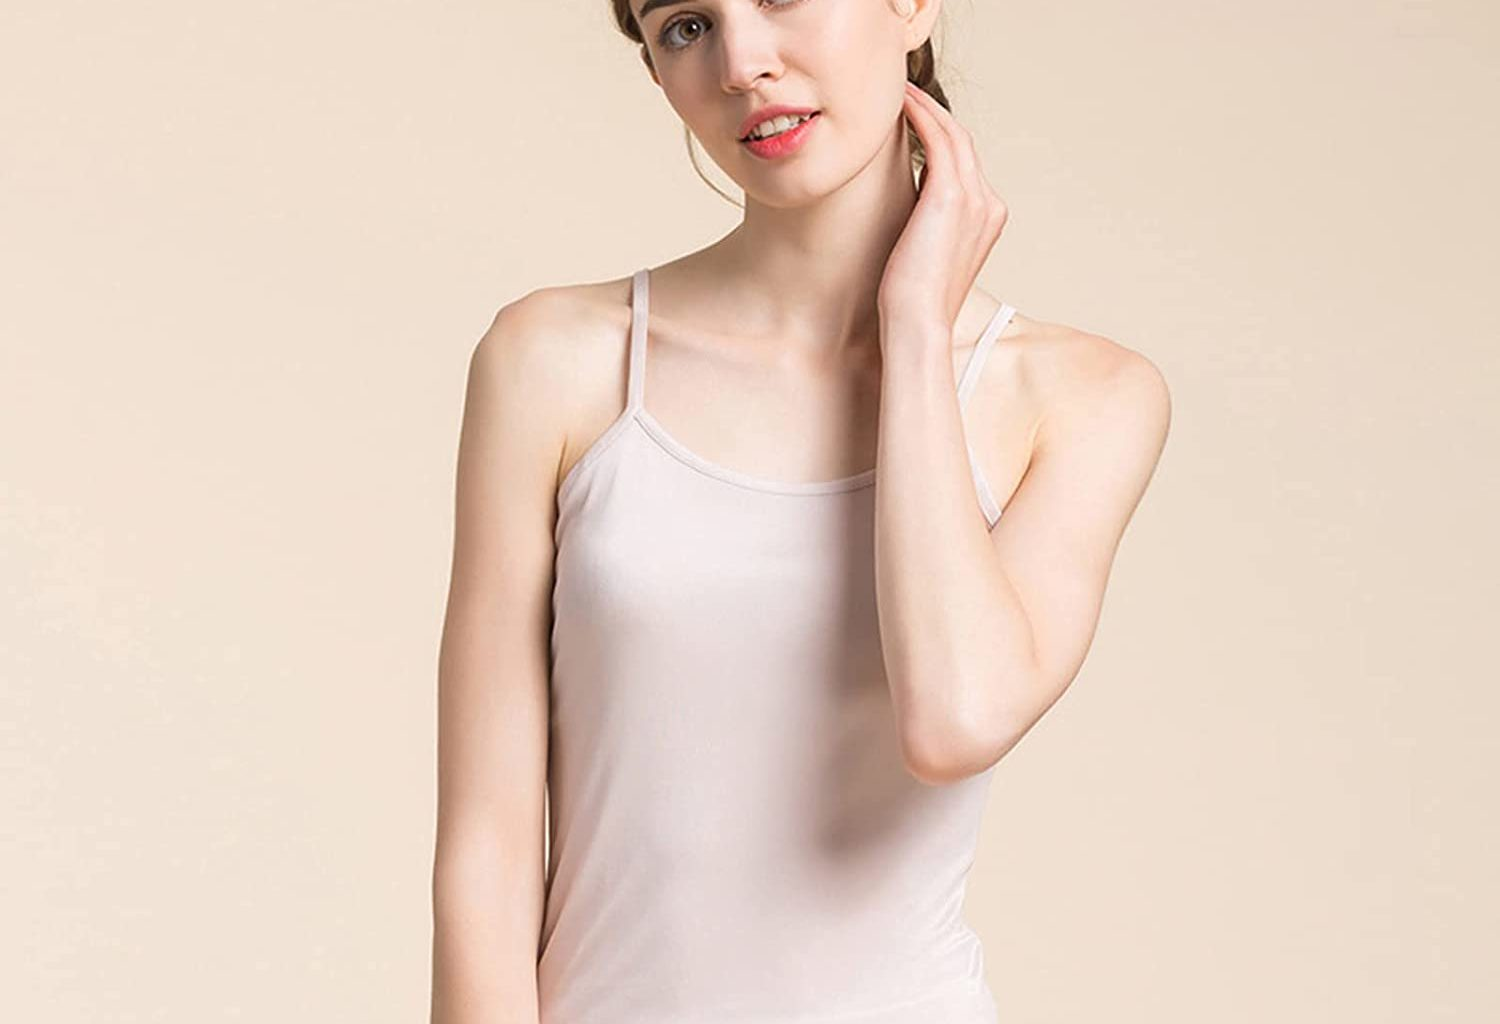 Best Features and Design of the Camisole With Built-in Bra